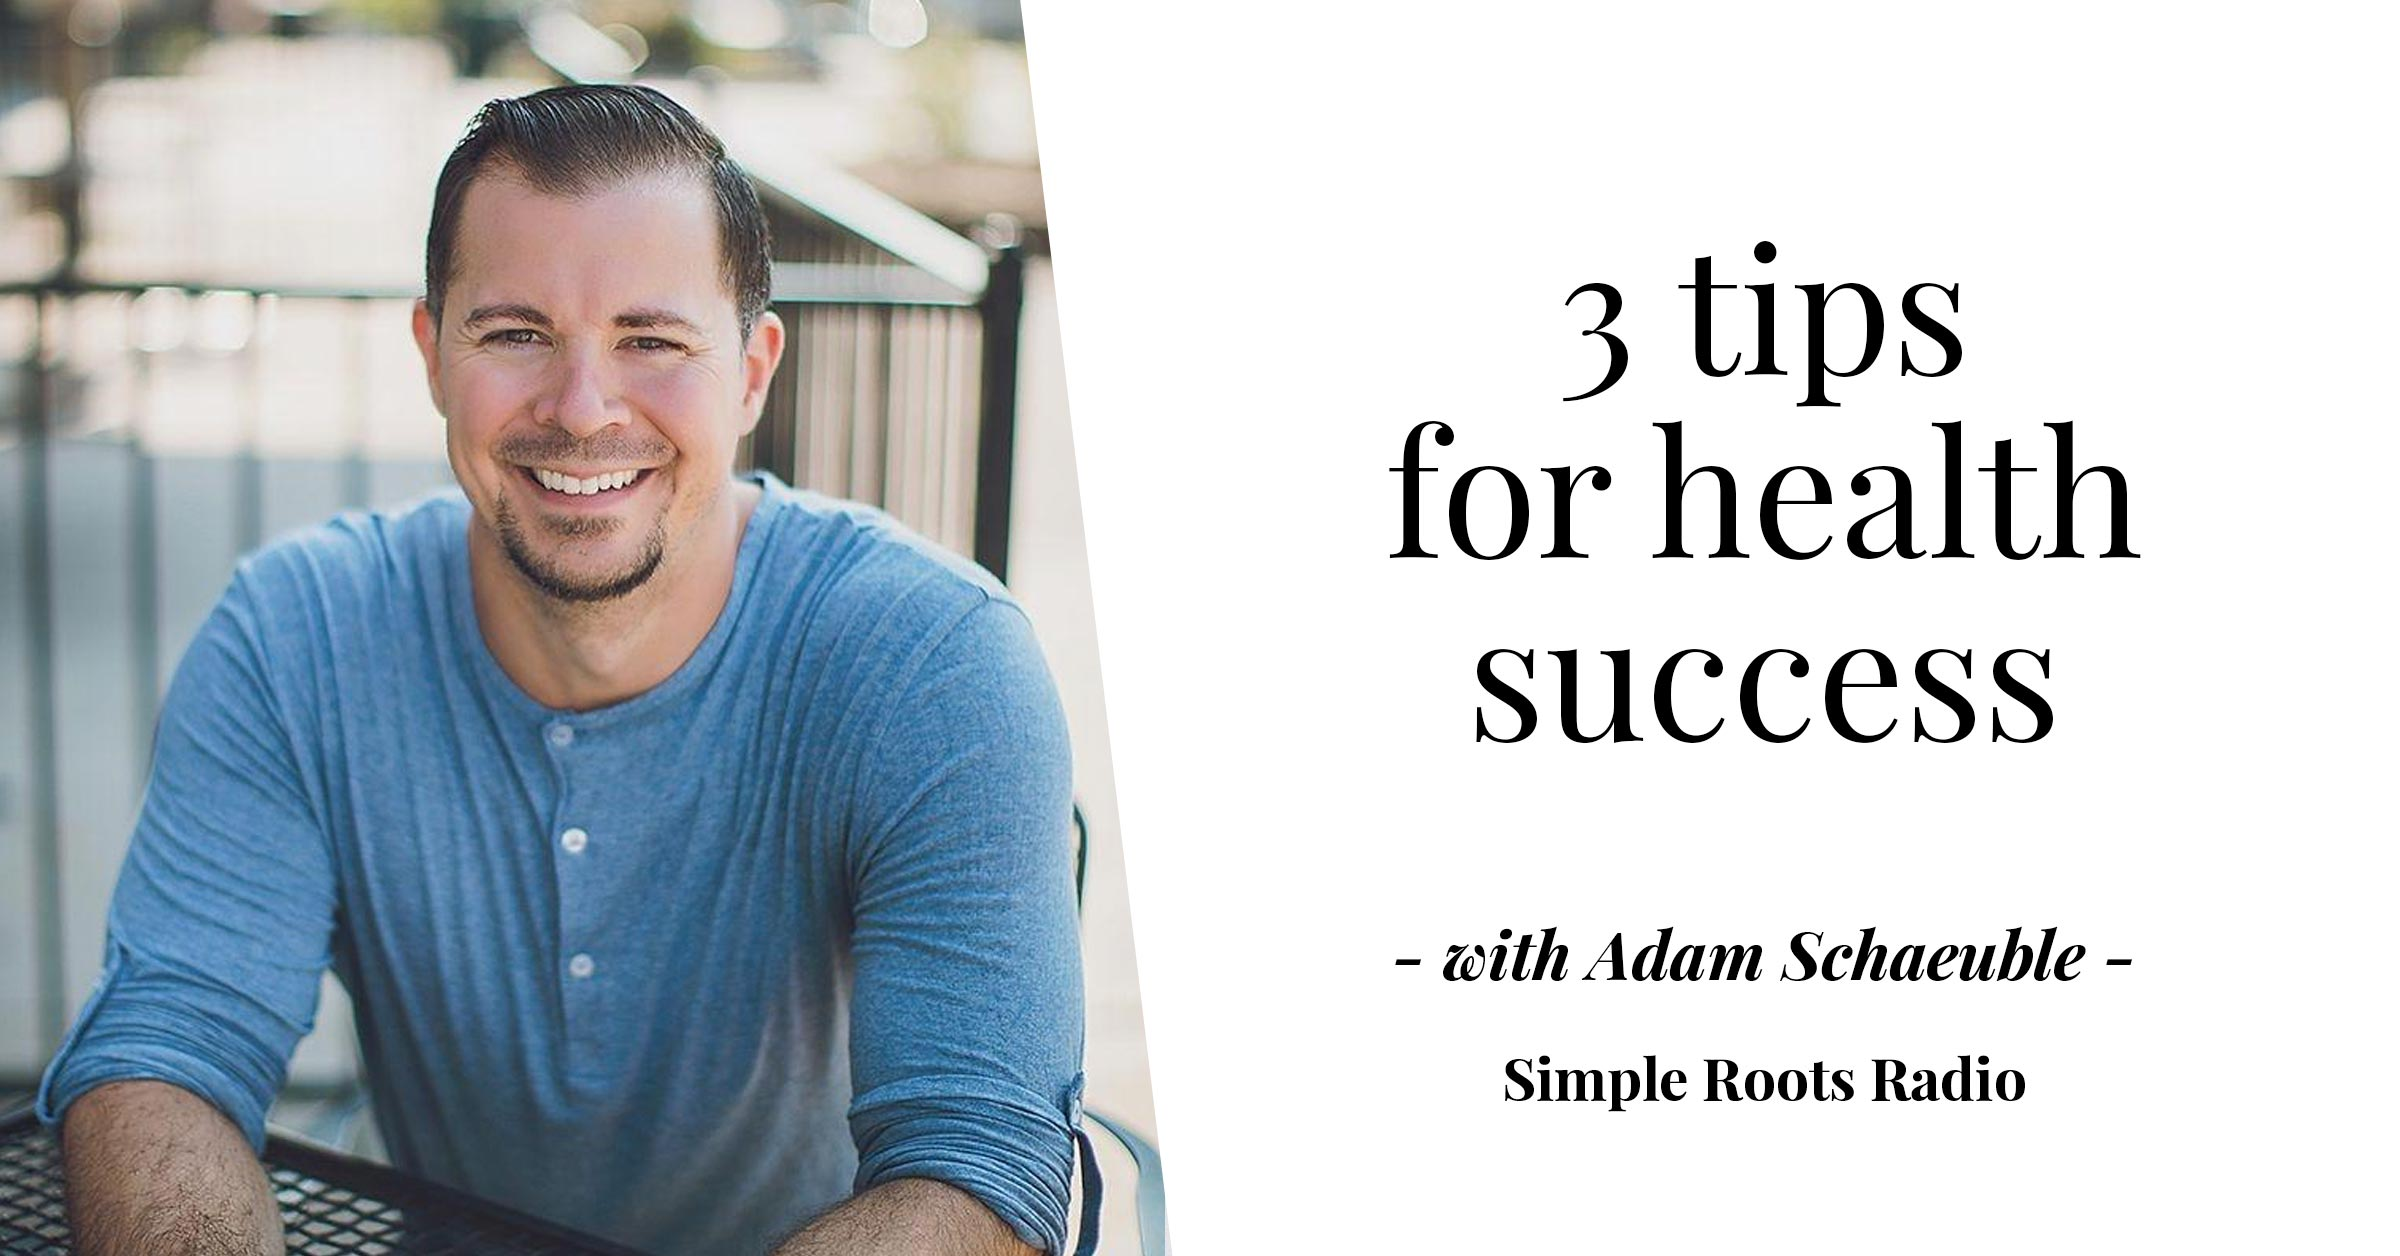 3 tips for health success | simplerootswellness.com #podcast #health #easy #wellness #success #weightloss